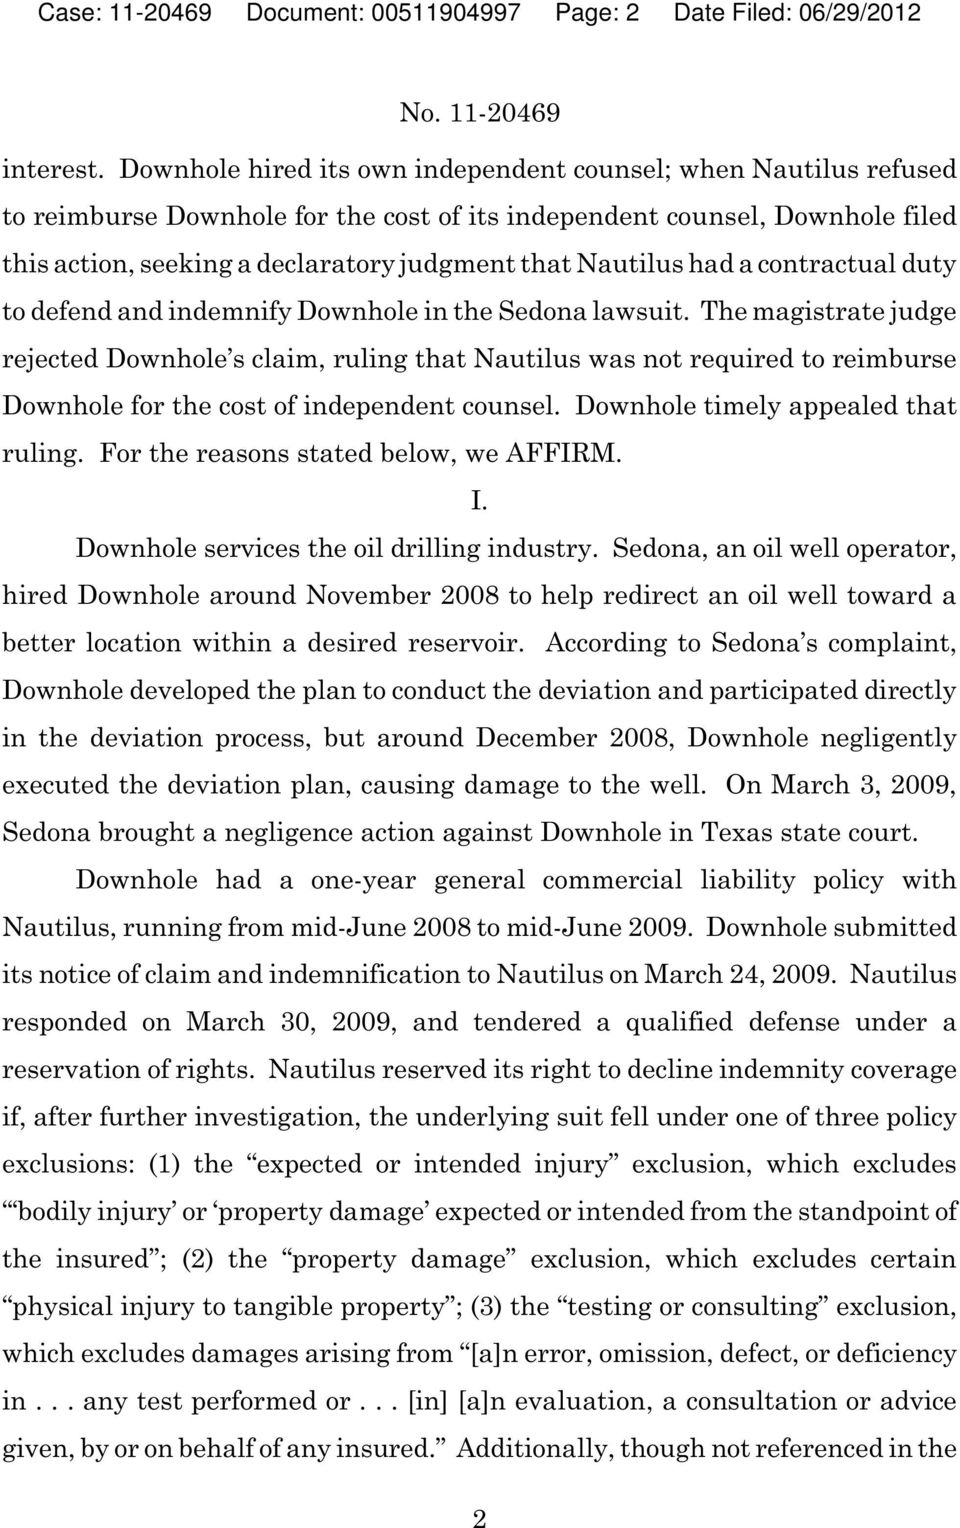 Nautilus had a contractual duty to defend and indemnify Downhole in the Sedona lawsuit.